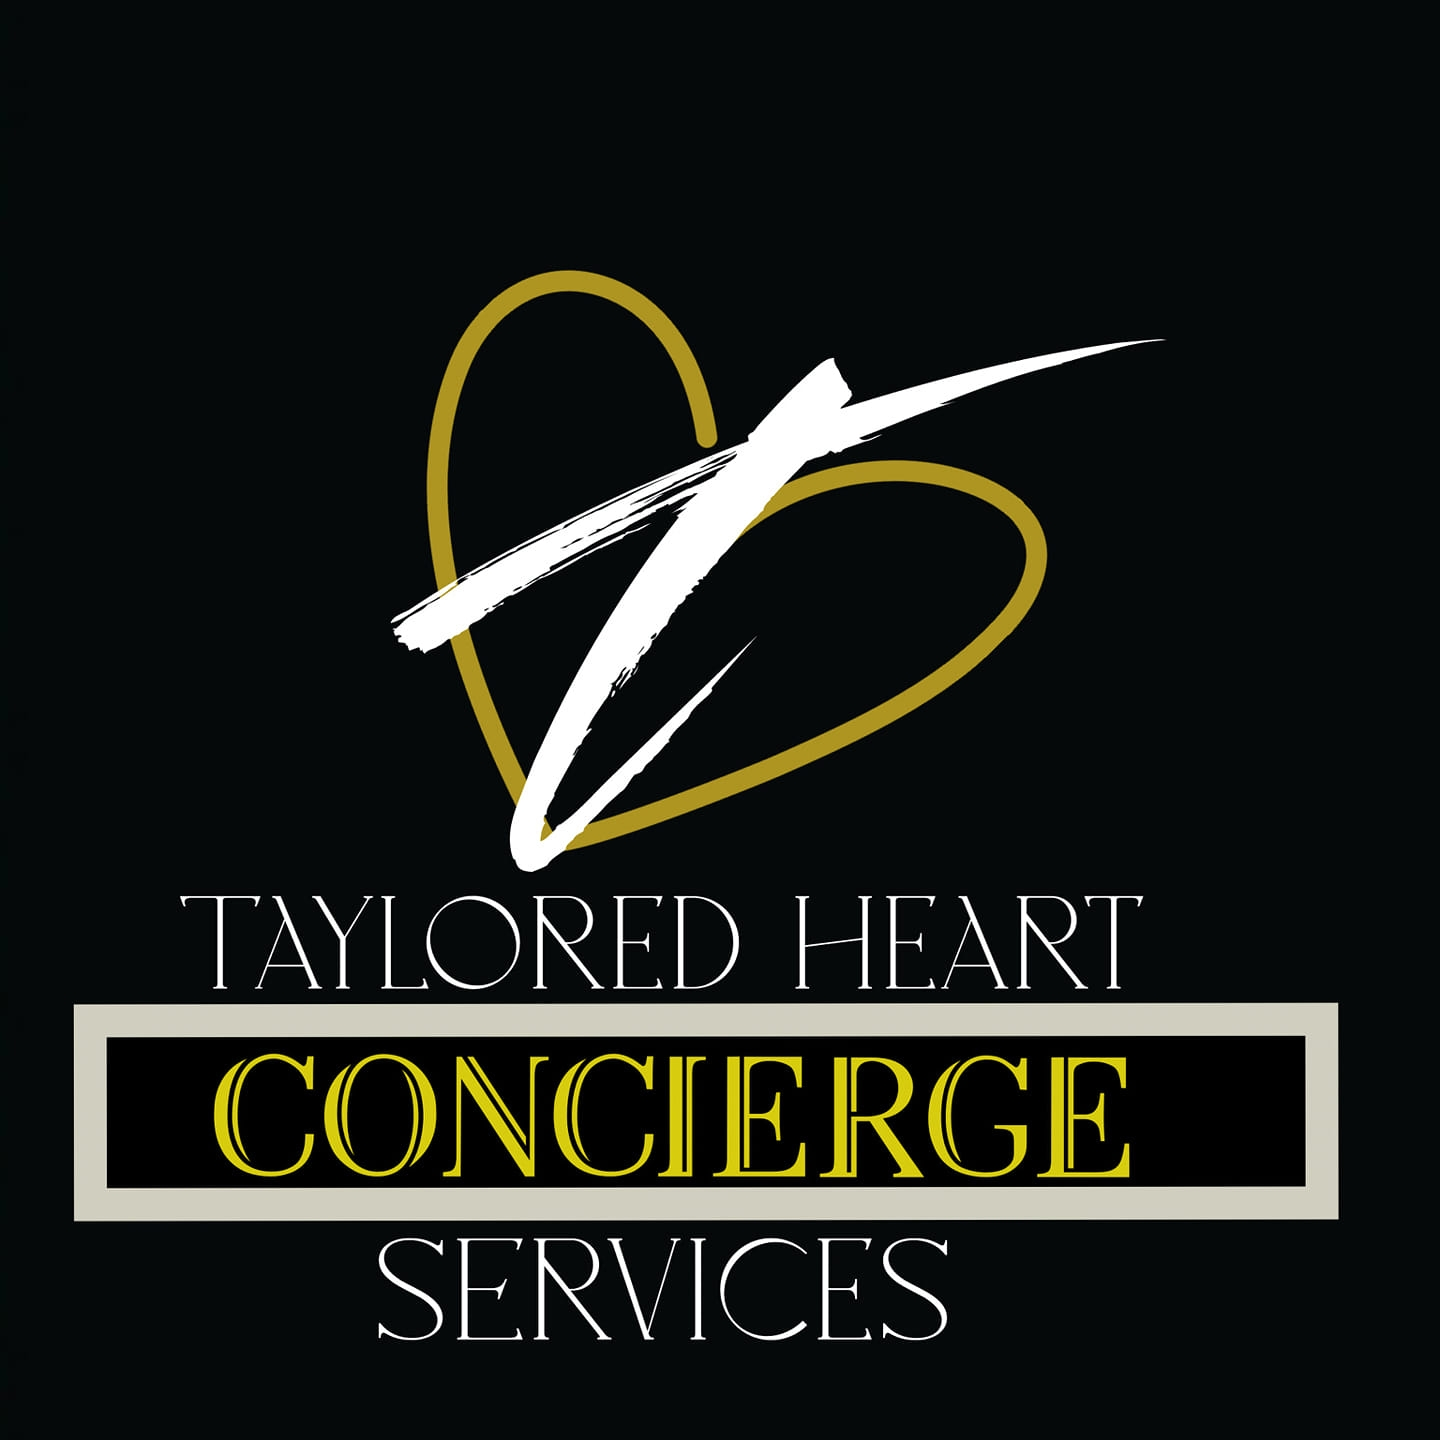 Taylored Heart Concierge Services – Personal services Angelina County